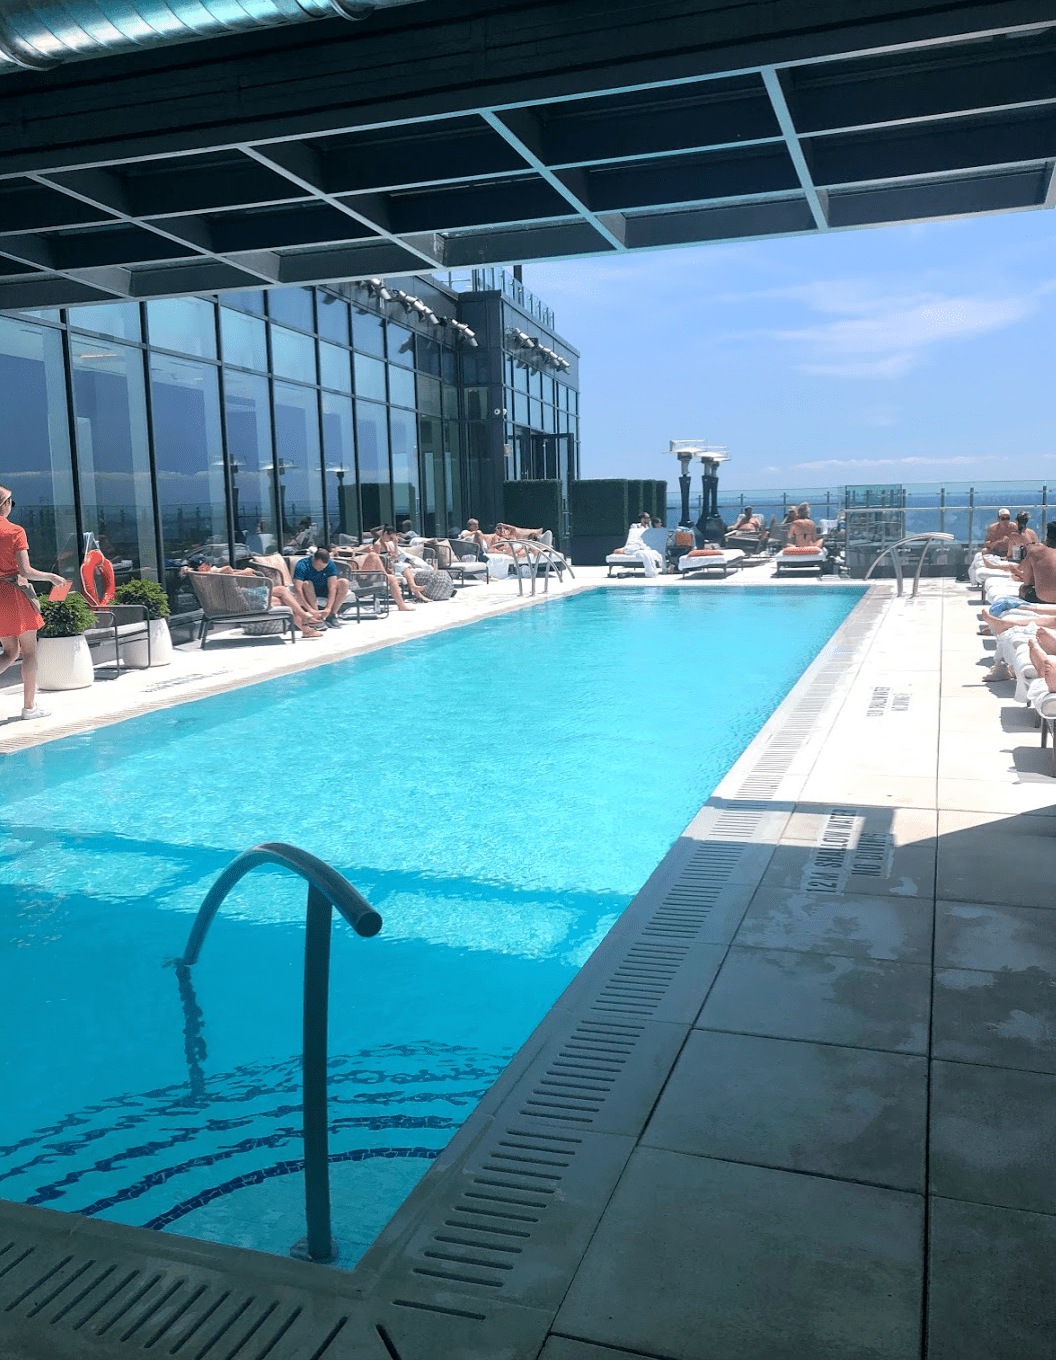 Poolside in Toronto, Canada